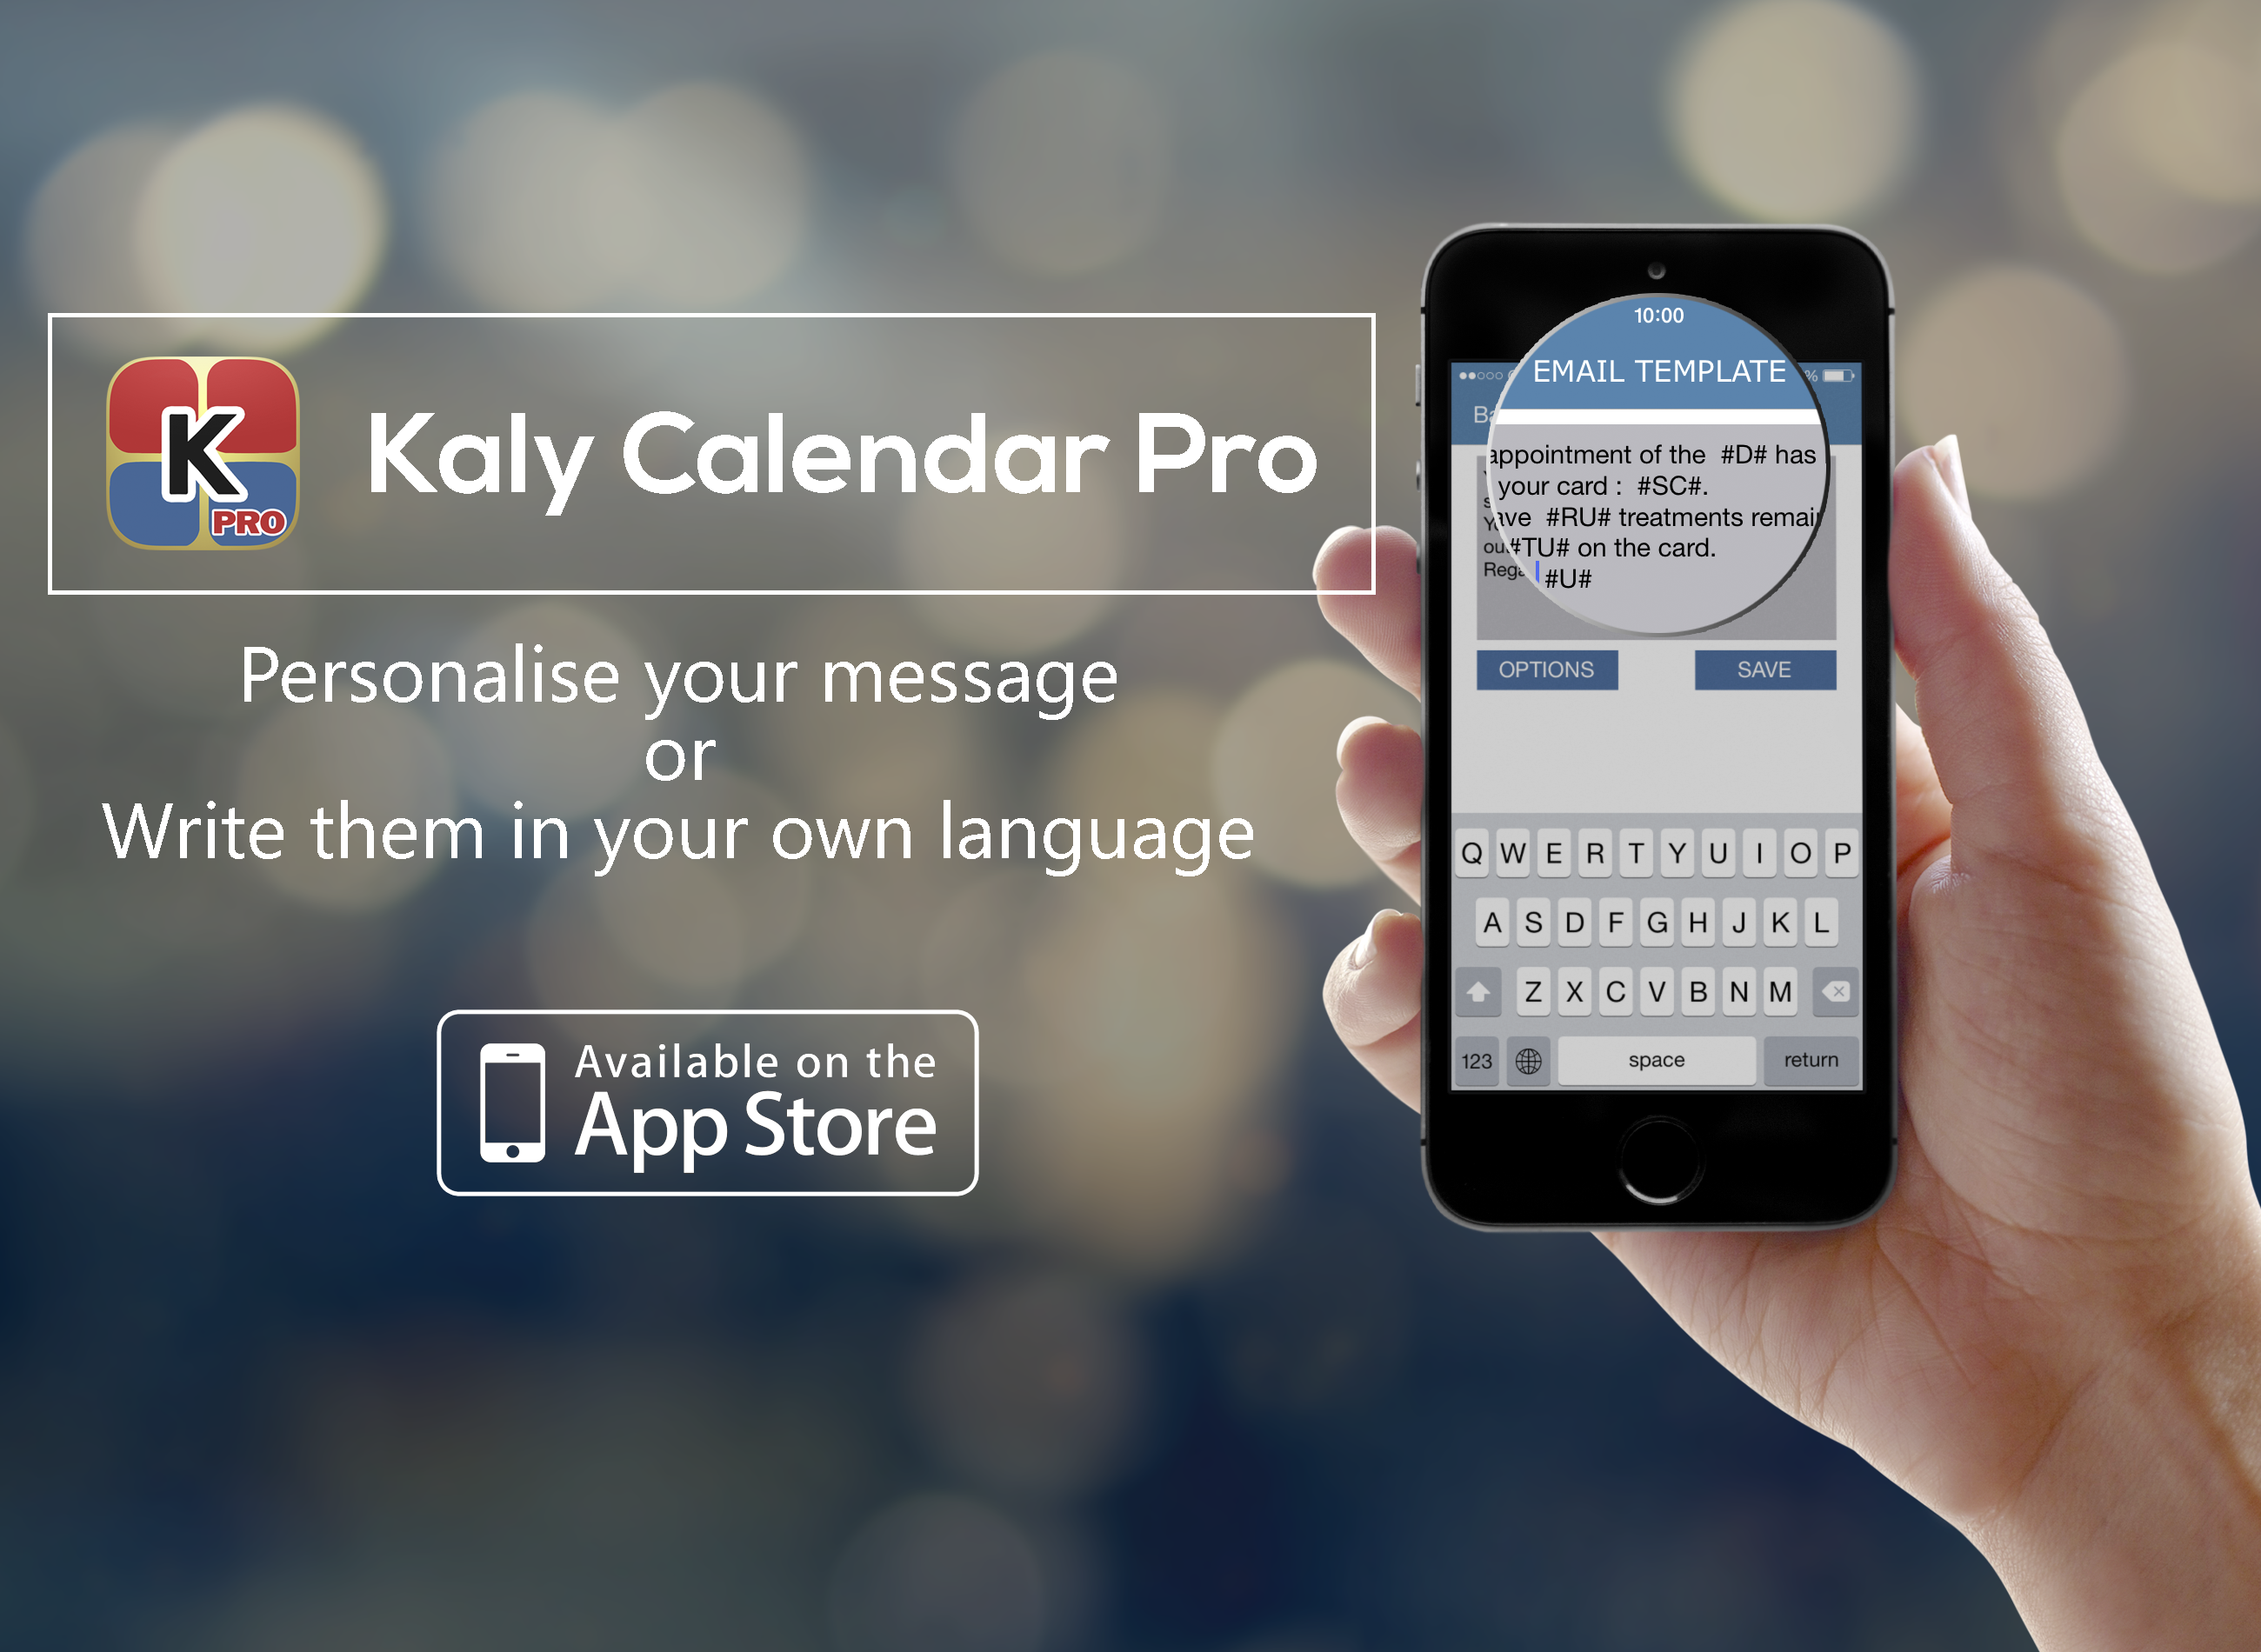 Customize your SMS reminder message